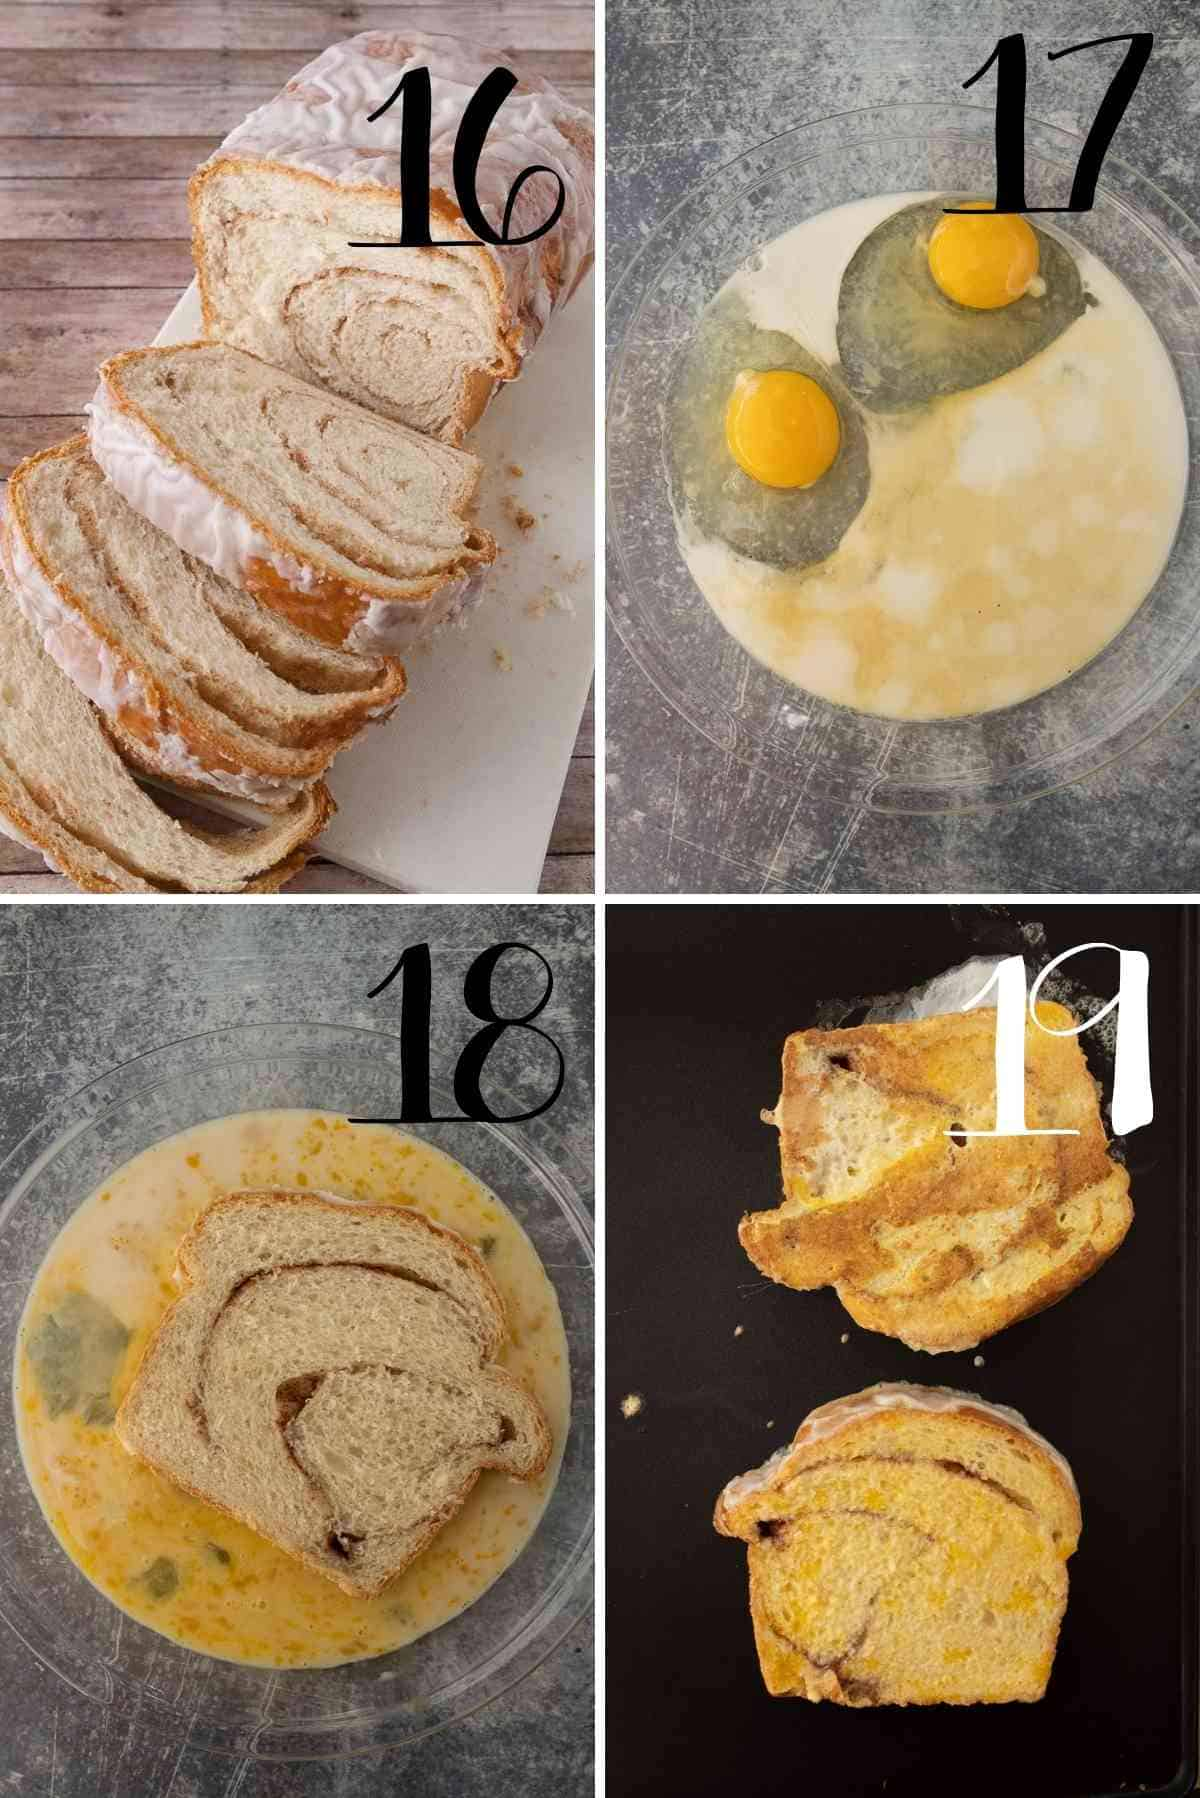 Slice the cinnamon bread into thick slices.  Dip in eggy milk and cook on a hot griddle.